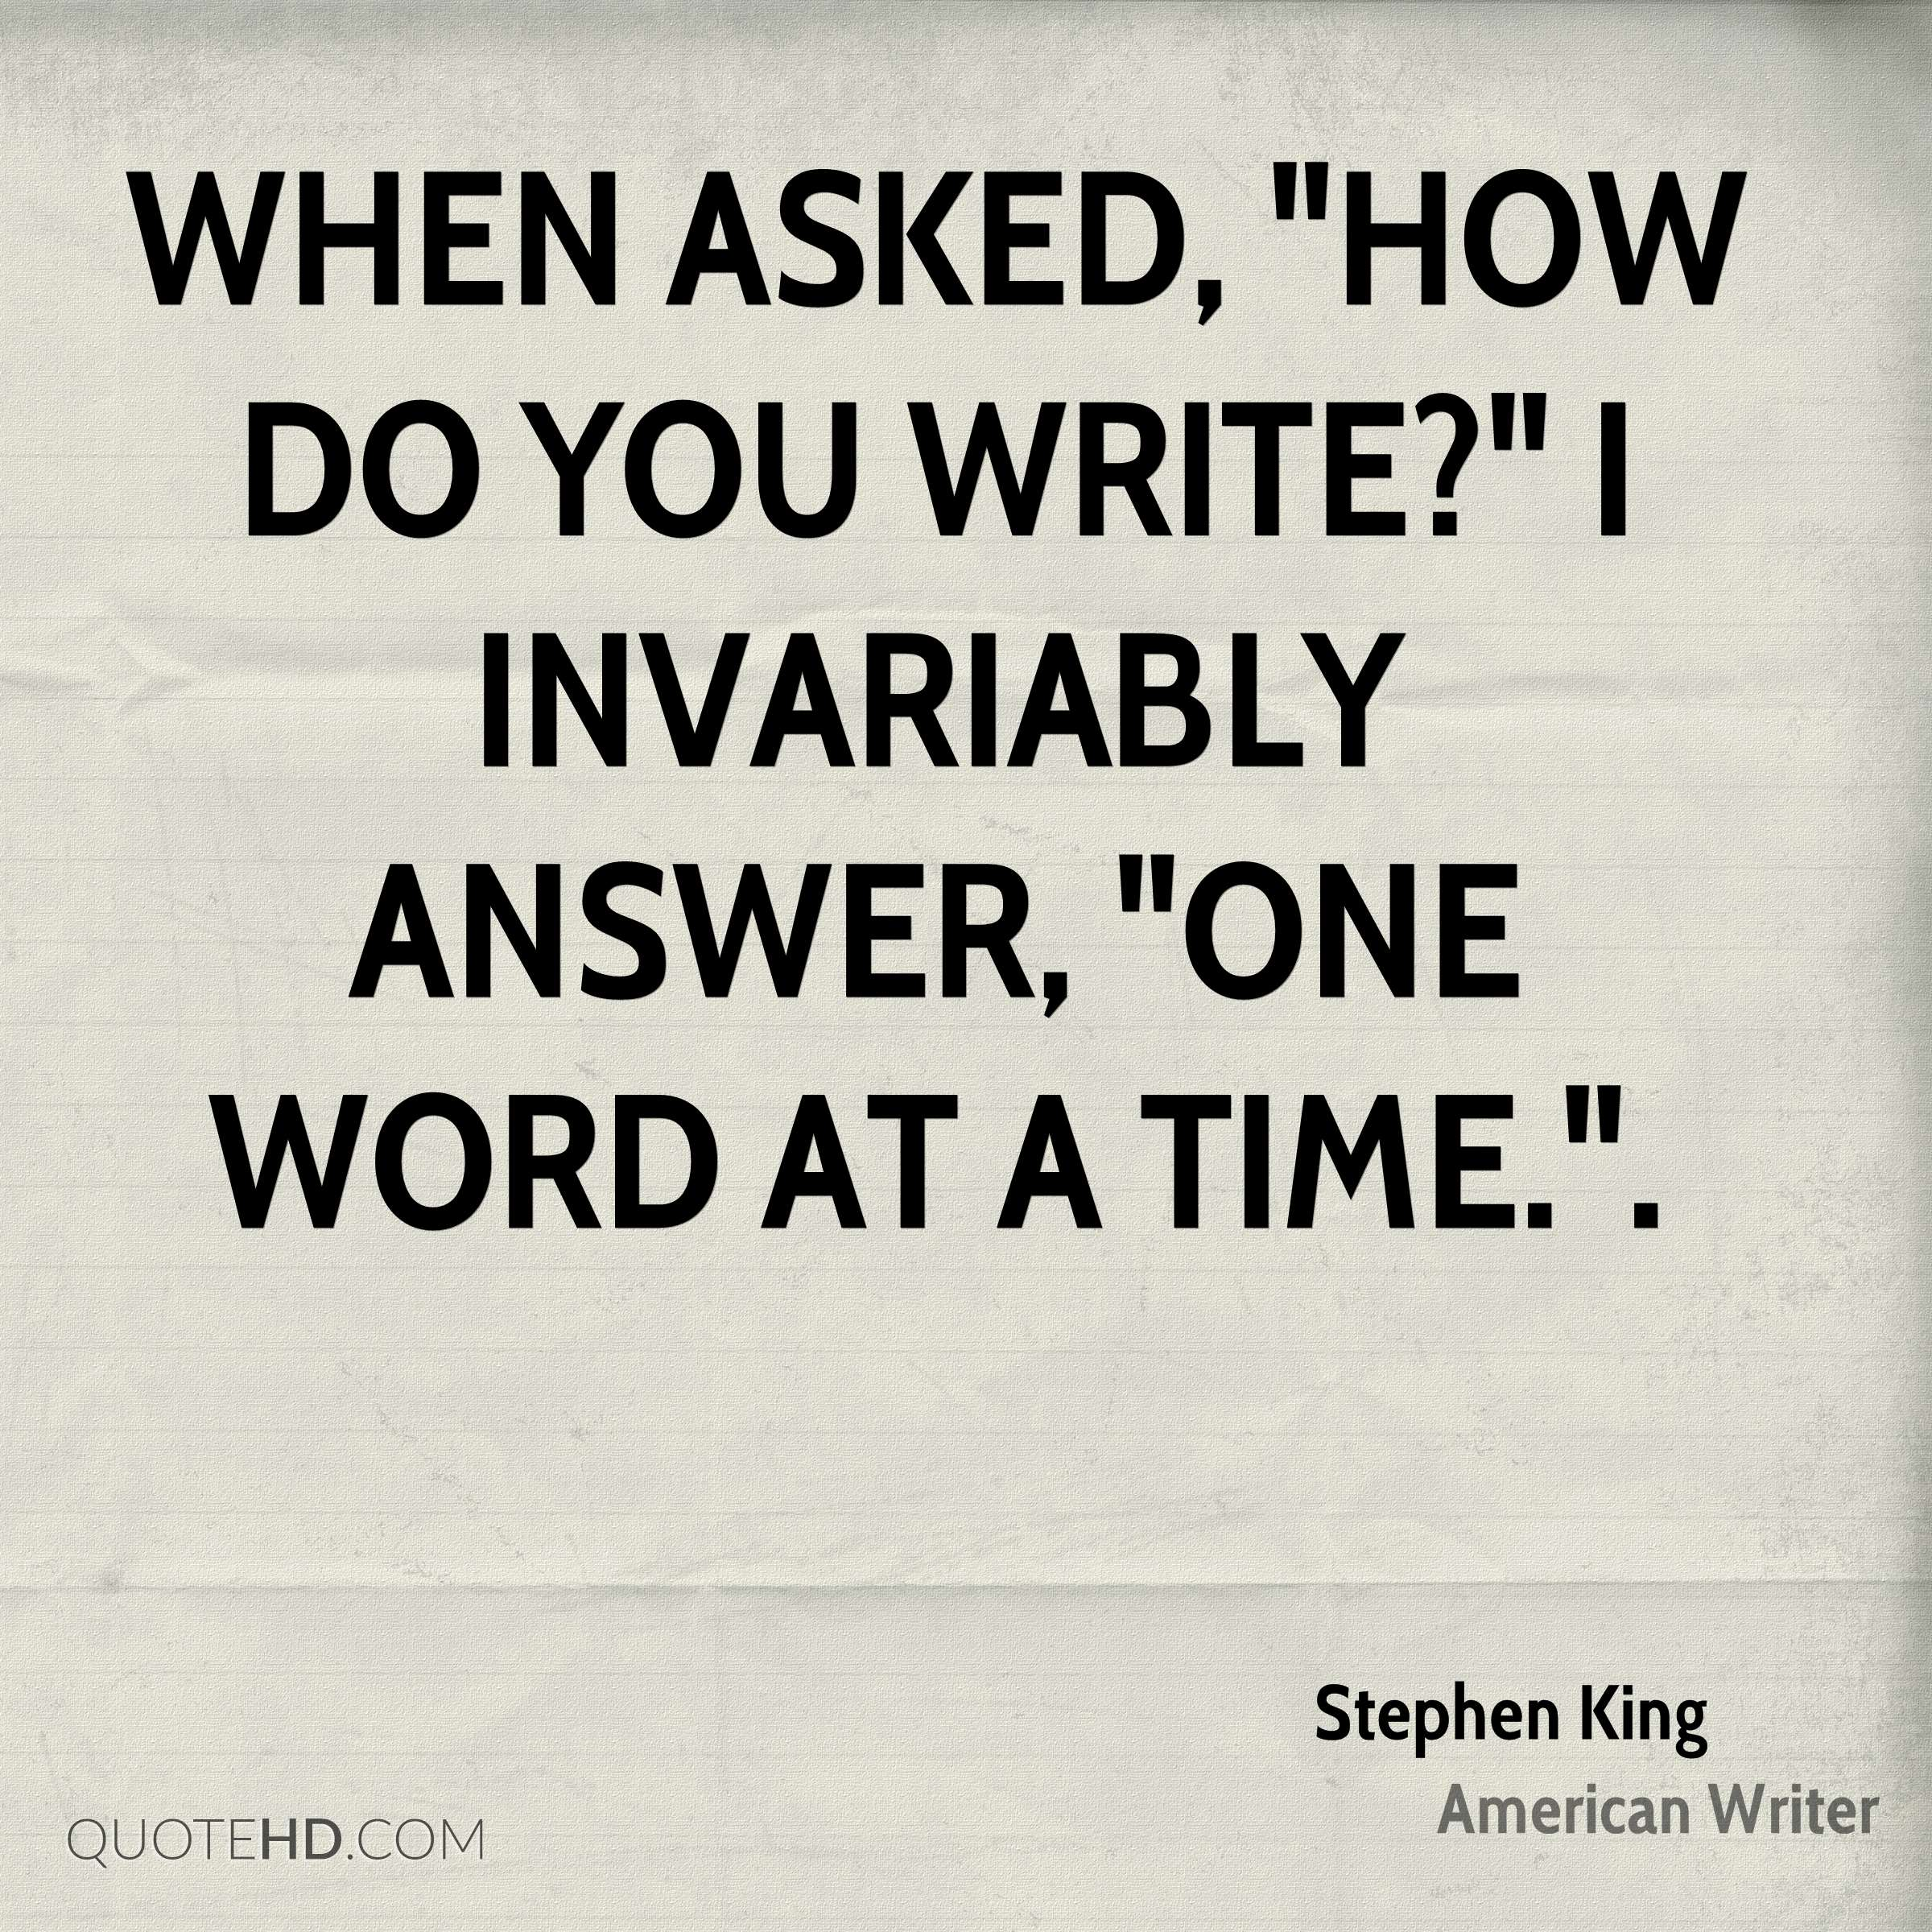 stephen king quotes | quotehd